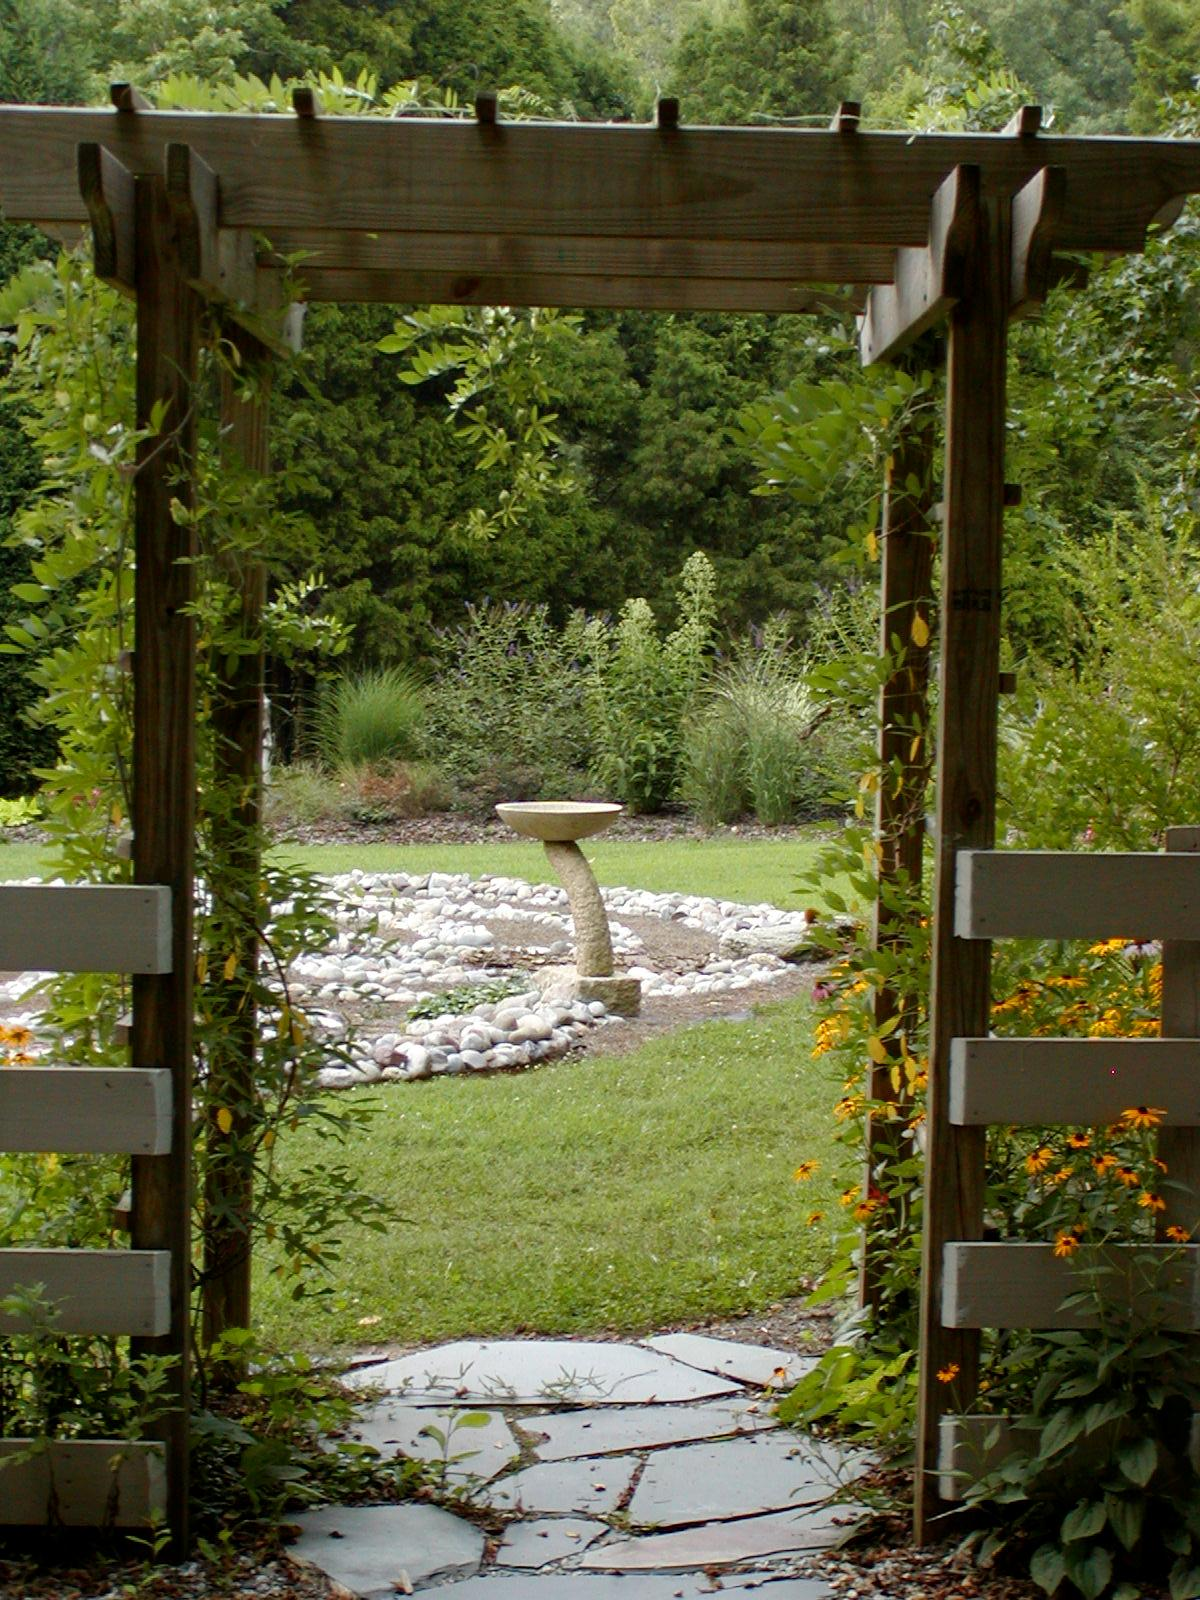 The Quiet Garden at Healing Ground